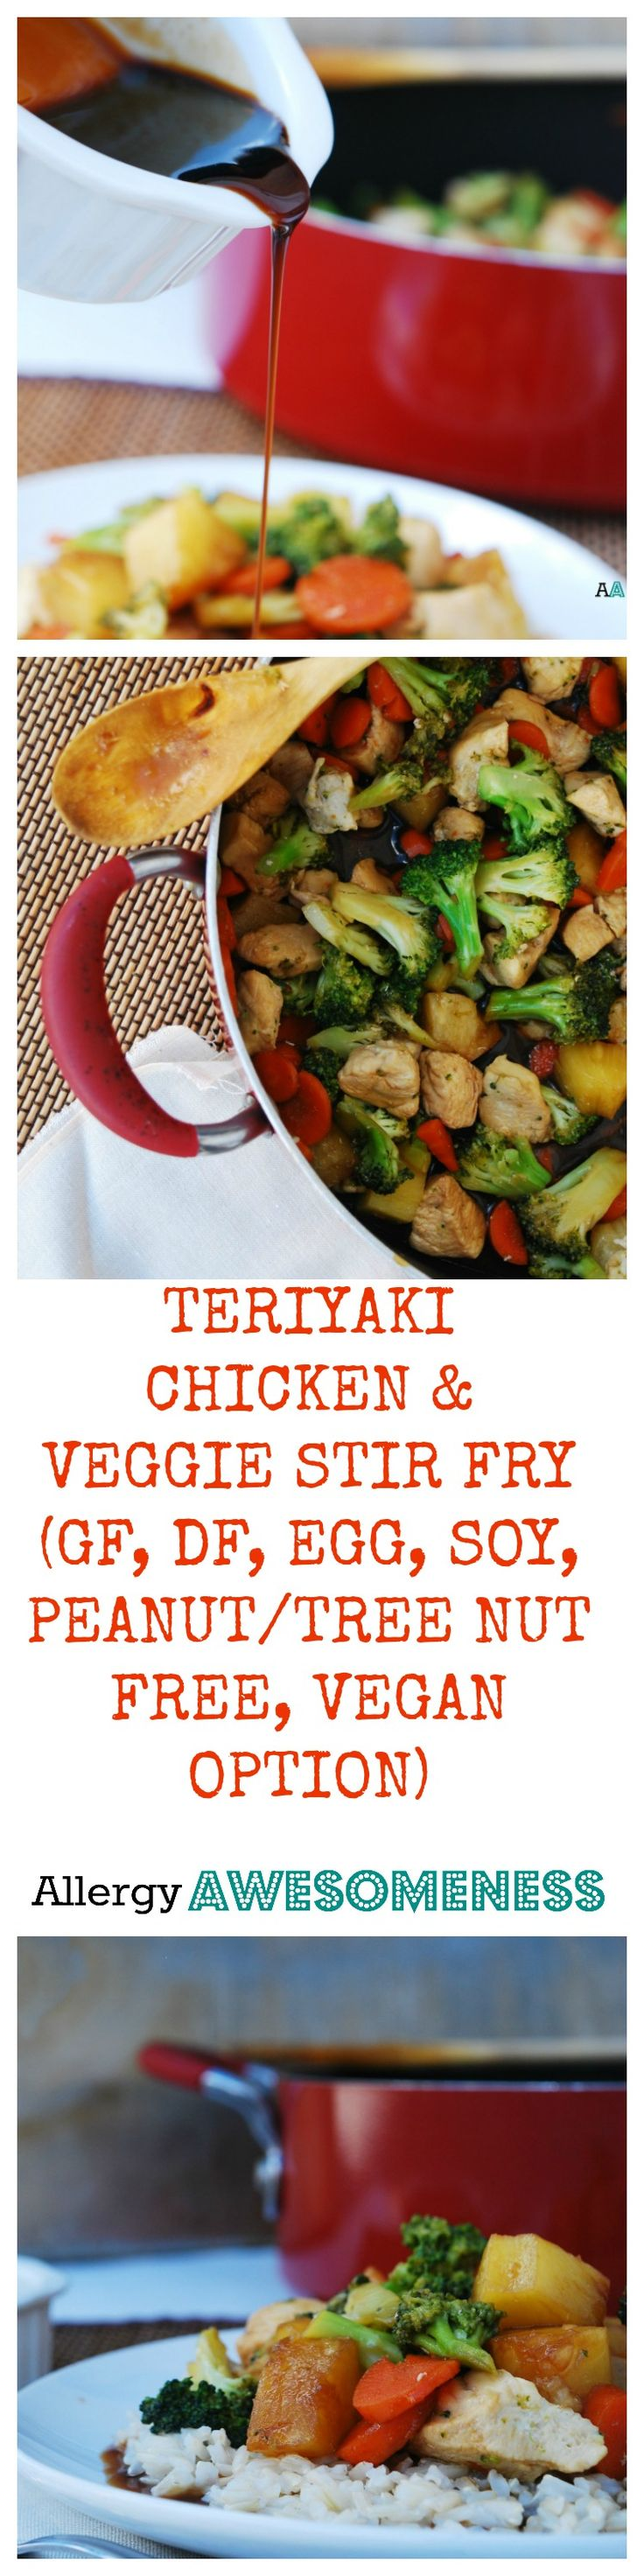 A homemade, gluten-free teriyaki sauce that only needs 7 ingredients and 5 minutes will cover all of your chicken and veggies in a sweet, yet tangy glaze. Serve over brown rice and you've got your pro(Ingredients Dinner Gluten Free)